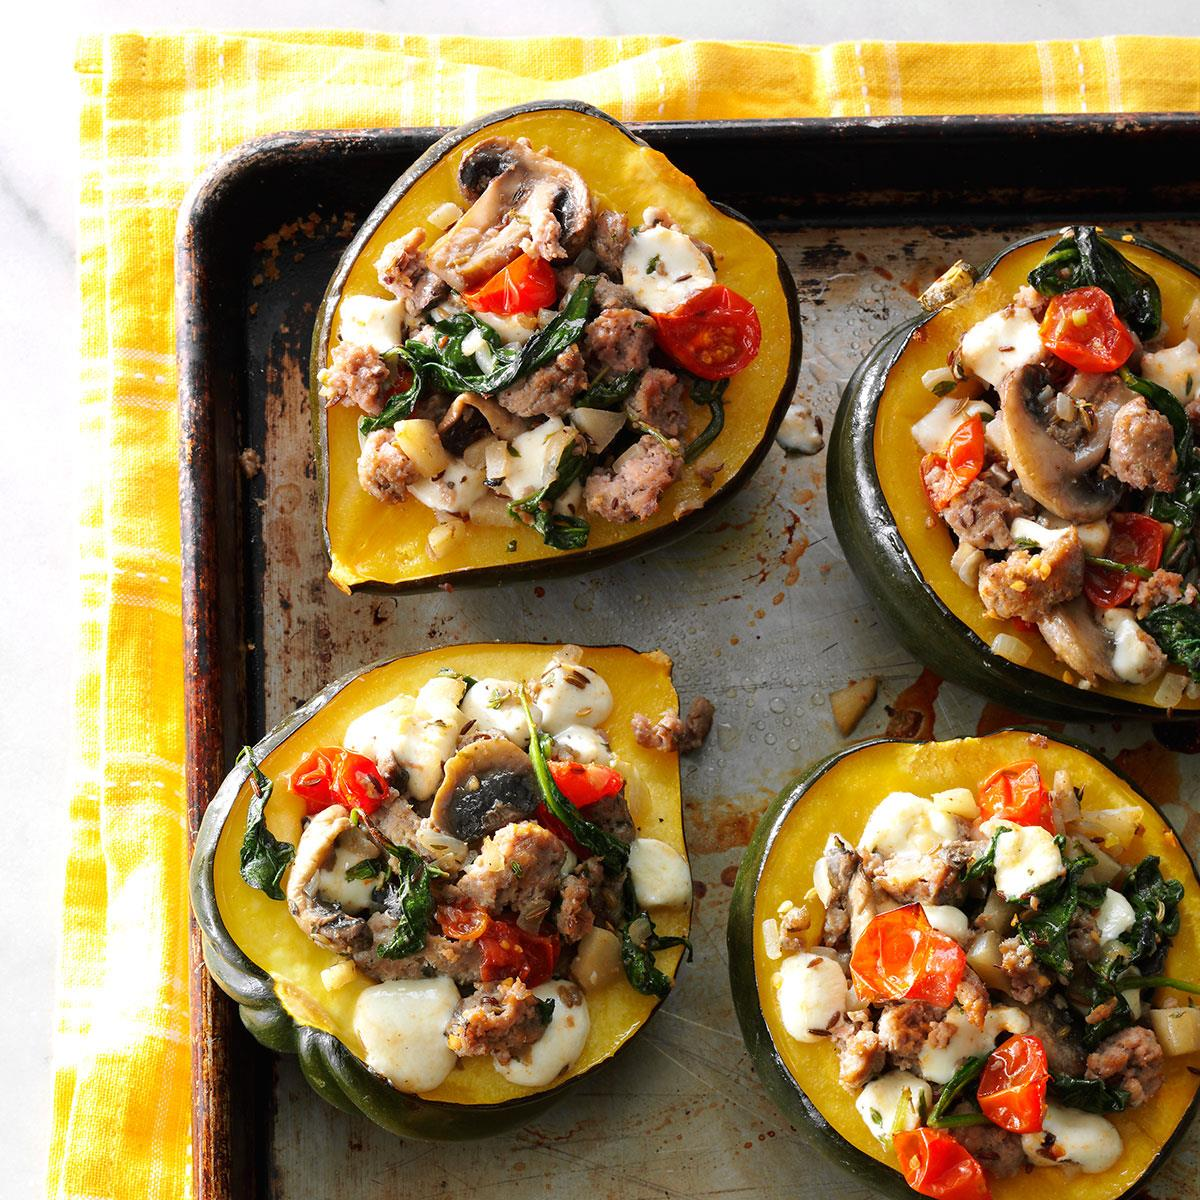 Turkey Sausage Stuffed Acorn Squash Recipe How To Make It Taste Of Home